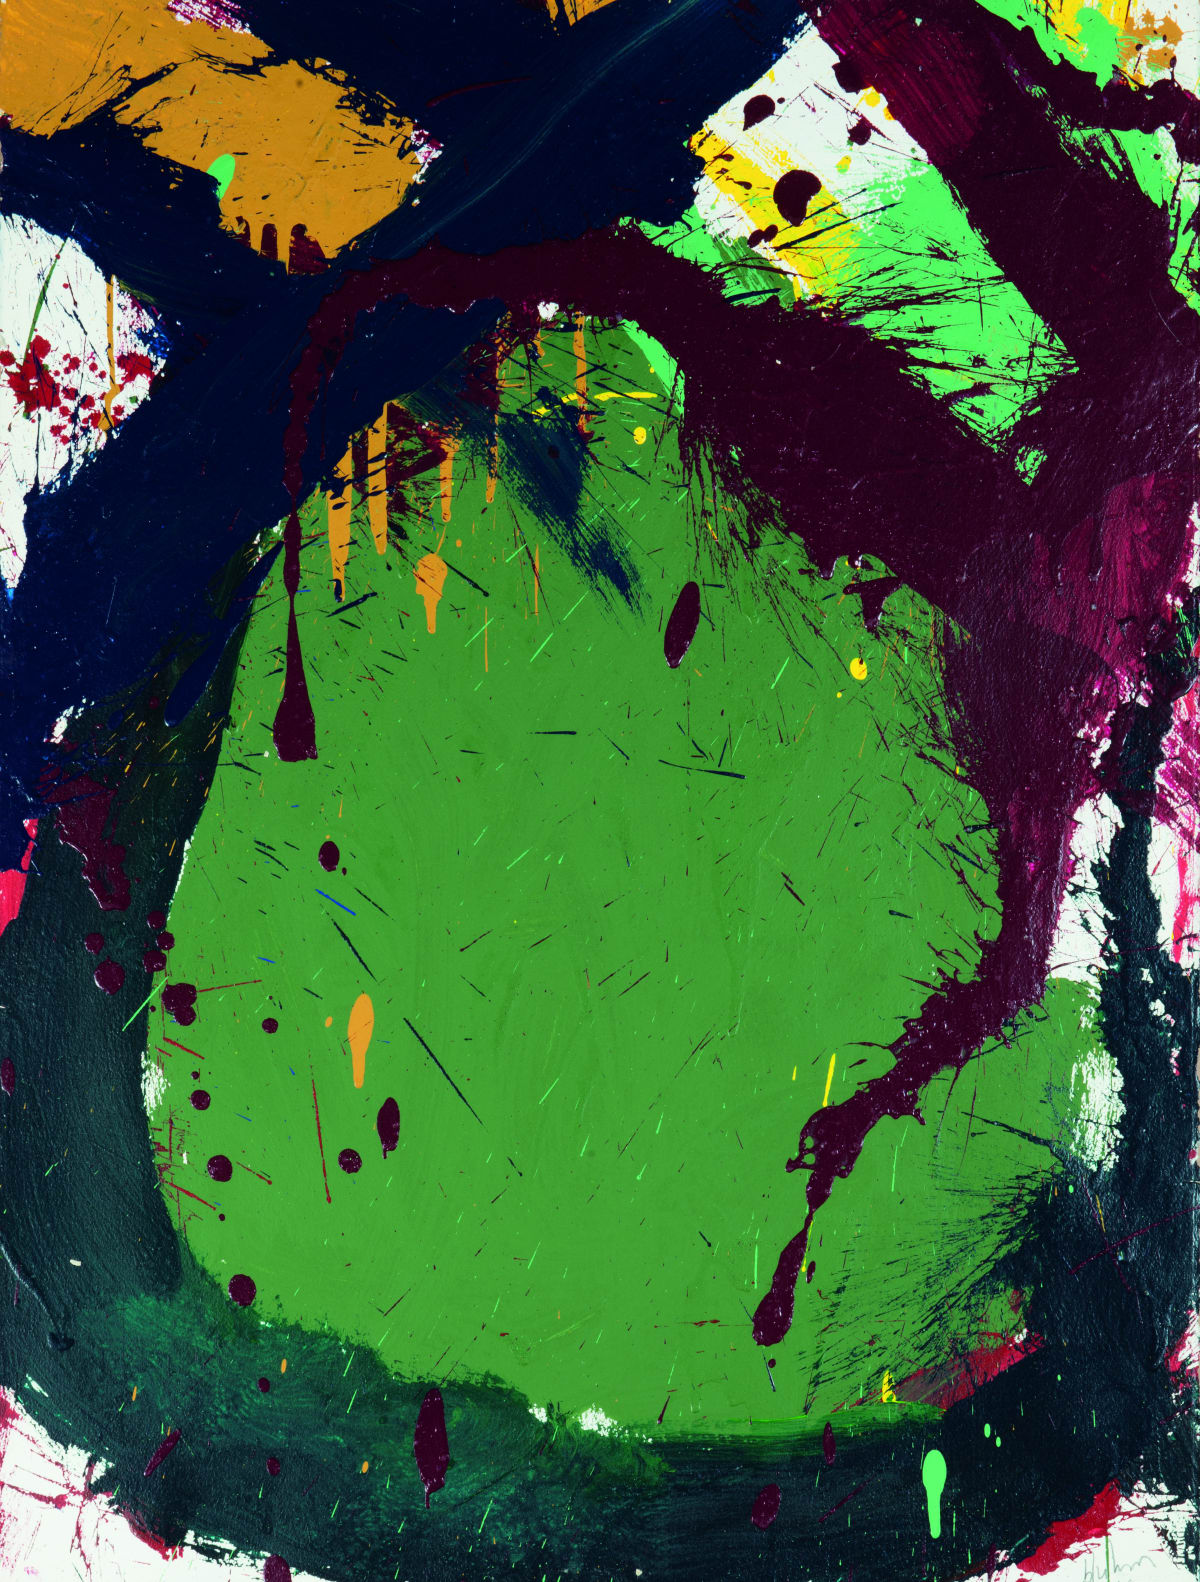 Norman Bluhm, Composition in Green, 1967